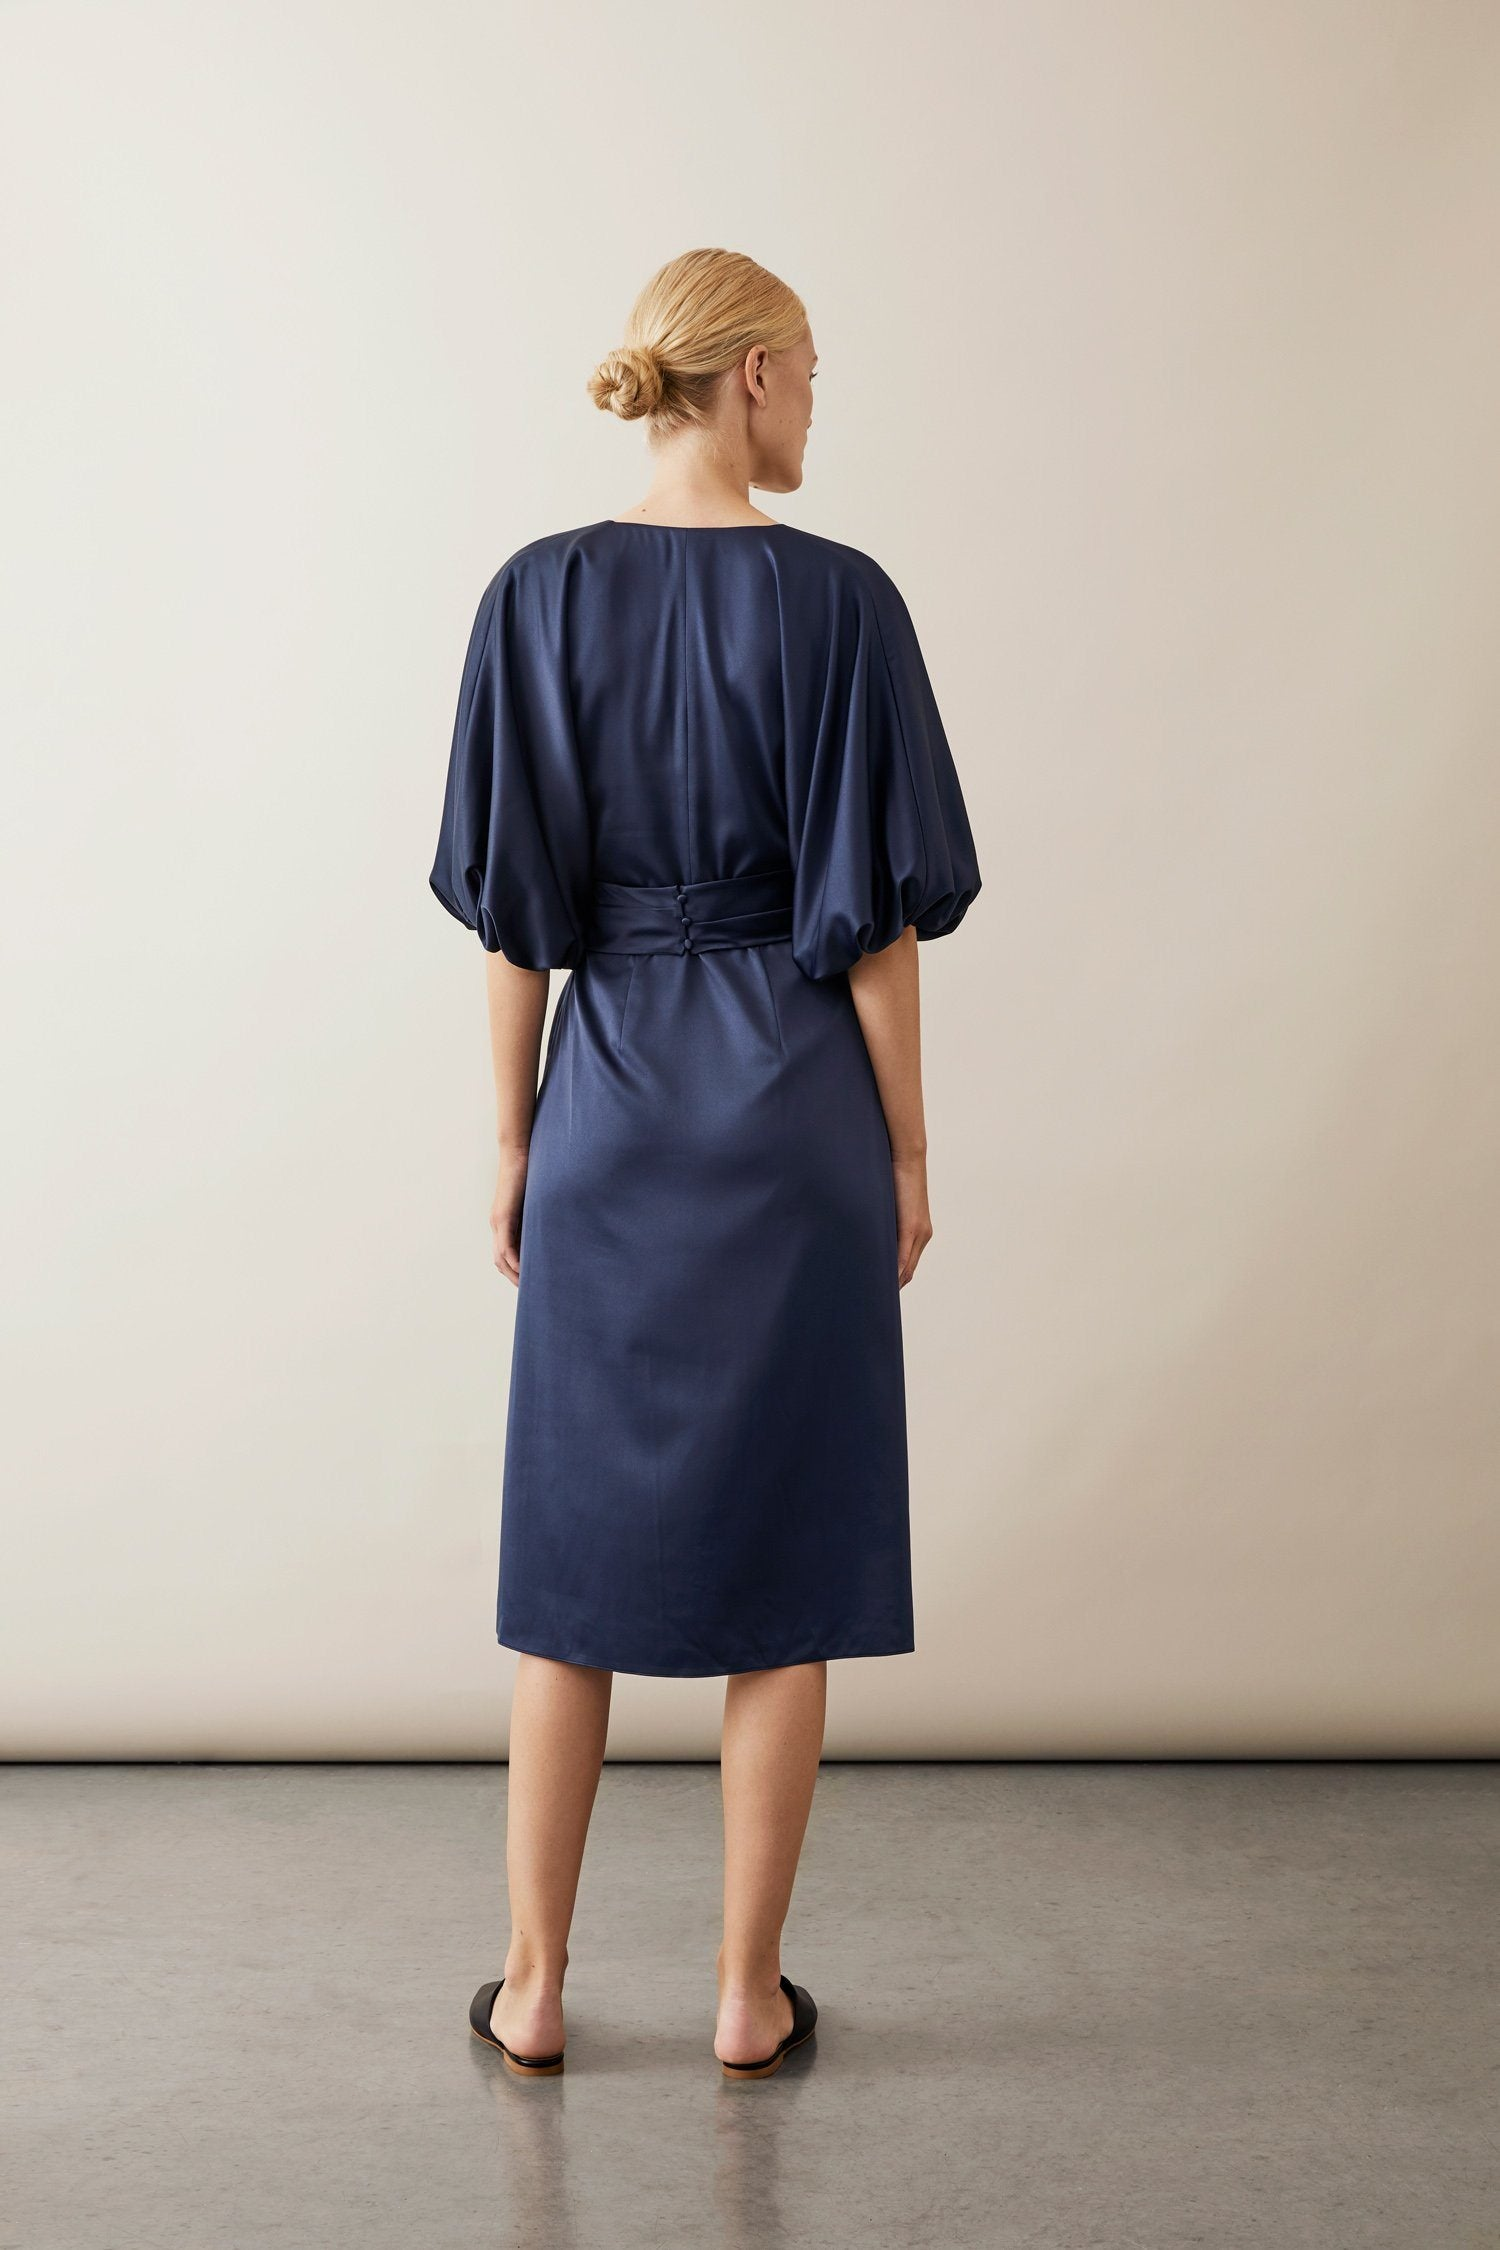 MIE DRESS - NAVY Dress Stylein